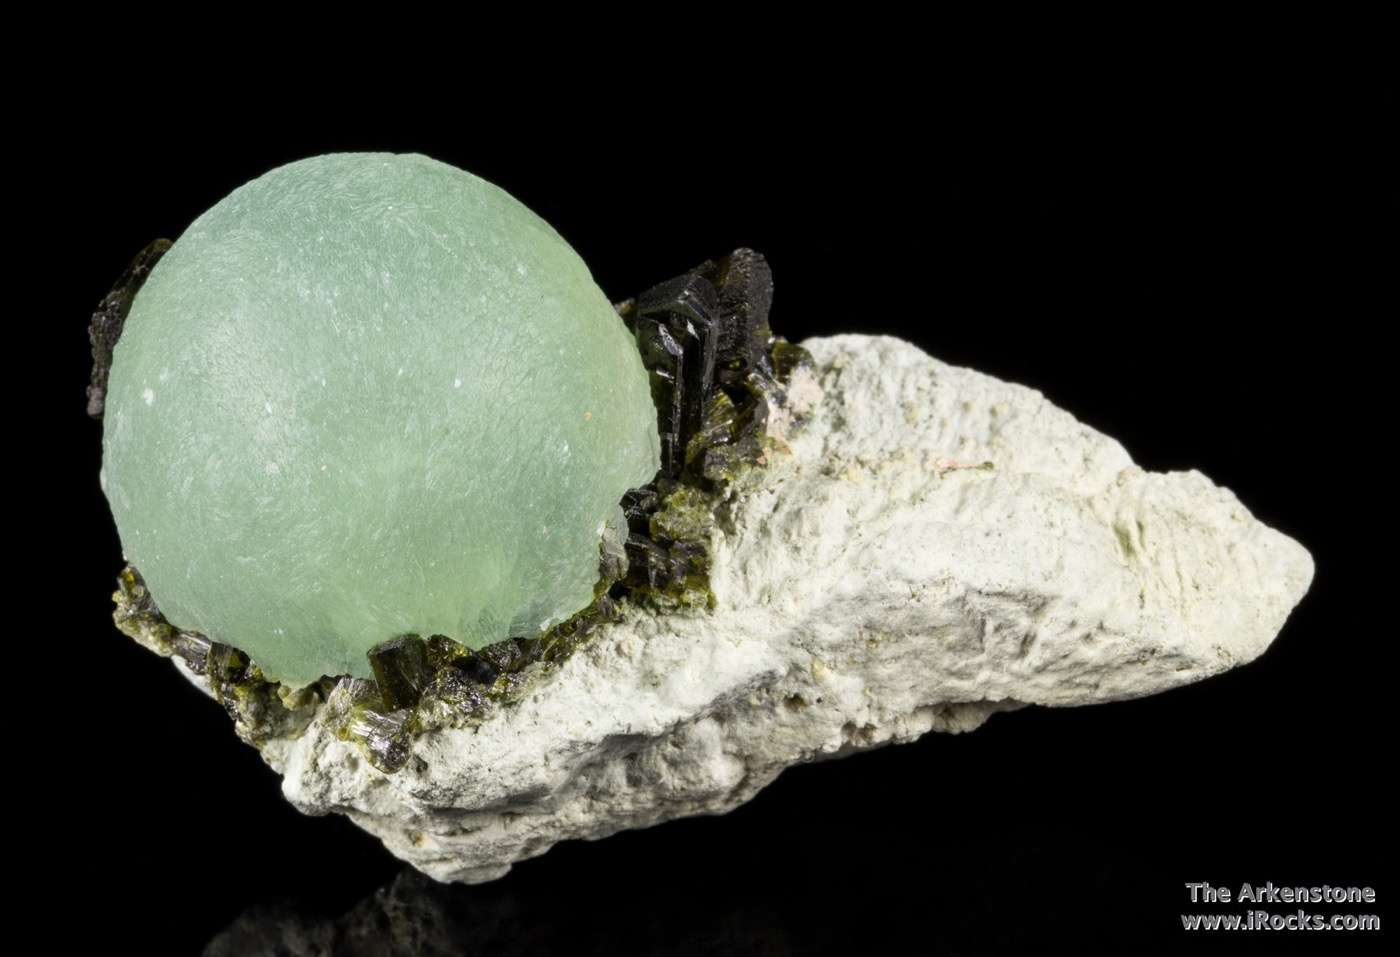 One attractive specimens lot A single lustrous translucent apple green